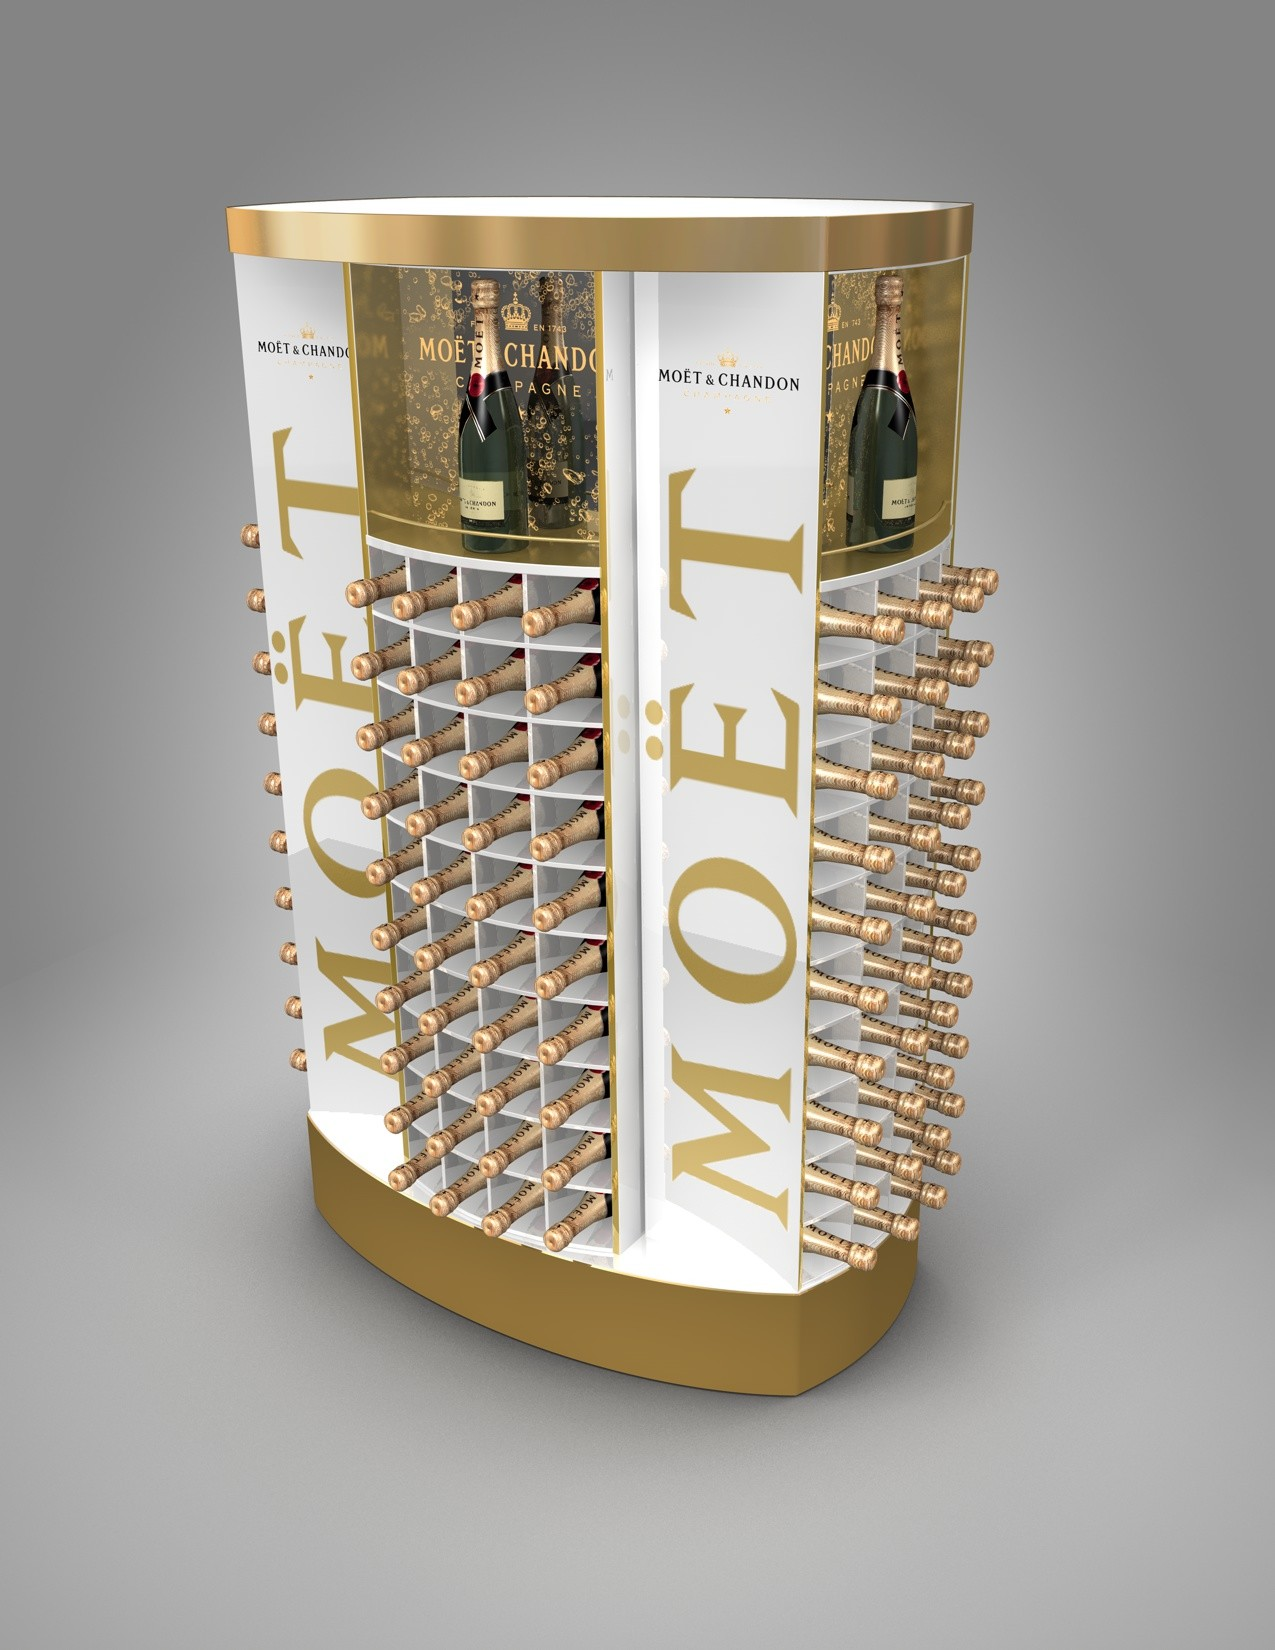 Moet and Chandon large display A.jpg